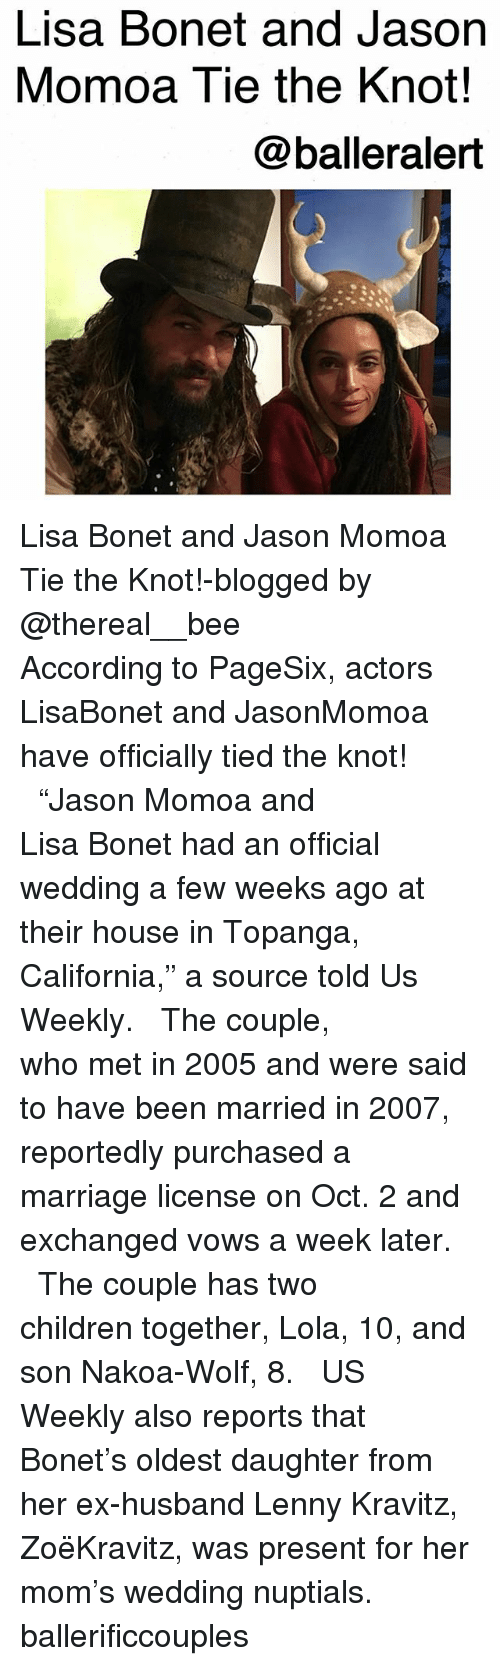 "Jason Momoa: Lisa Bonet and Jason  Momoa Tie the Knot!  @balleralert Lisa Bonet and Jason Momoa Tie the Knot!-blogged by @thereal__bee ⠀⠀⠀⠀⠀⠀⠀⠀⠀ ⠀⠀ According to PageSix, actors LisaBonet and JasonMomoa have officially tied the knot! ⠀⠀⠀⠀⠀⠀⠀⠀⠀ ⠀⠀ ""Jason Momoa and Lisa Bonet had an official wedding a few weeks ago at their house in Topanga, California,"" a source told Us Weekly. ⠀⠀⠀⠀⠀⠀⠀⠀⠀ ⠀⠀ The couple, who met in 2005 and were said to have been married in 2007, reportedly purchased a marriage license on Oct. 2 and exchanged vows a week later. ⠀⠀⠀⠀⠀⠀⠀⠀⠀ ⠀⠀ The couple has two children together, Lola, 10, and son Nakoa-Wolf, 8. ⠀⠀⠀⠀⠀⠀⠀⠀⠀ ⠀⠀ US Weekly also reports that Bonet's oldest daughter from her ex-husband Lenny Kravitz, ZoëKravitz, was present for her mom's wedding nuptials. ballerificcouples"